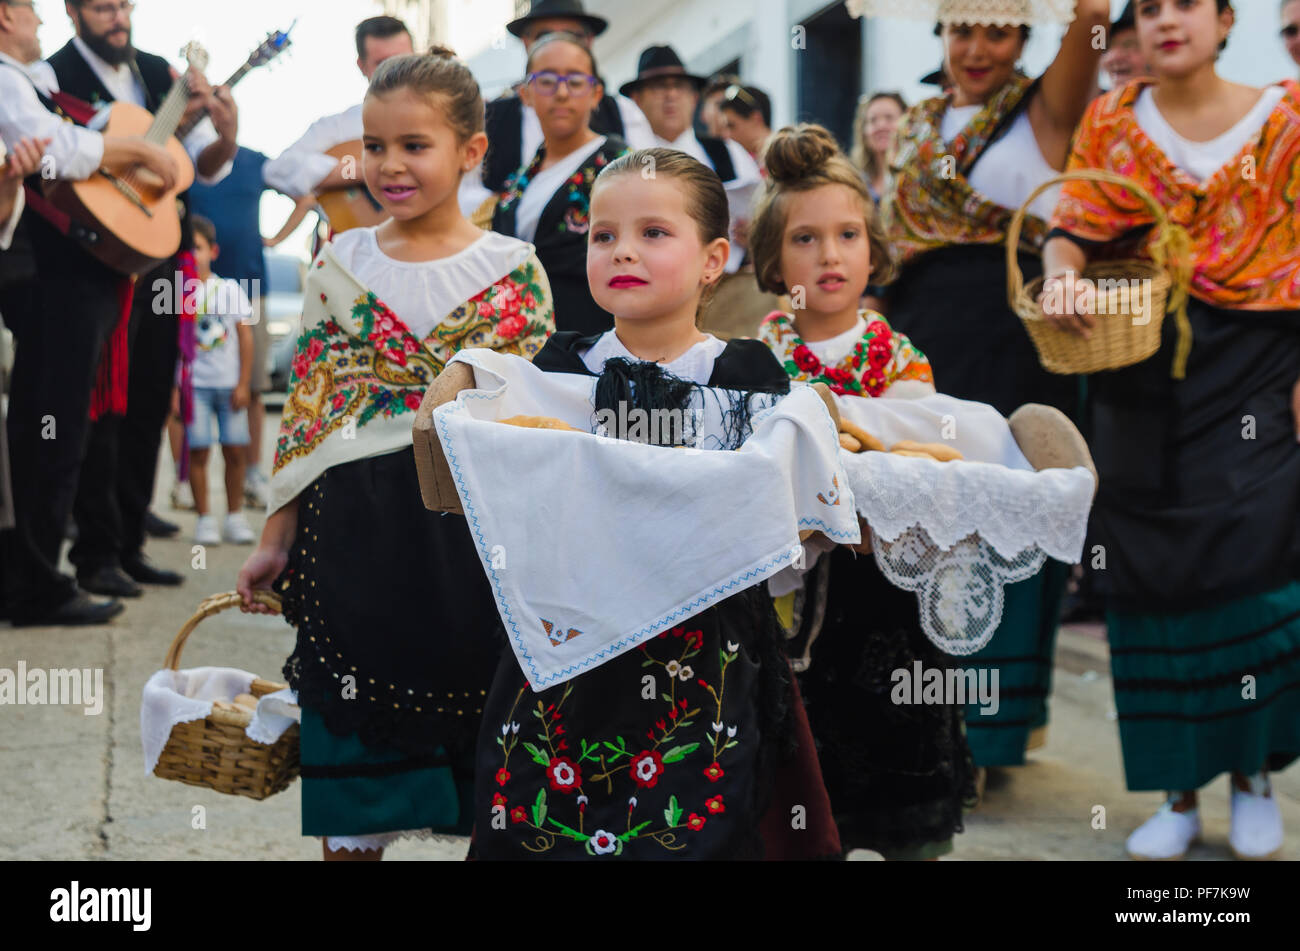 Santiago de Alcantara, SPAIN - 18 AUGUST 2018:Once a year the traditional festival 'La Frenda' is celebrated in the town of Santiago de Alcantara, Cac - Stock Image